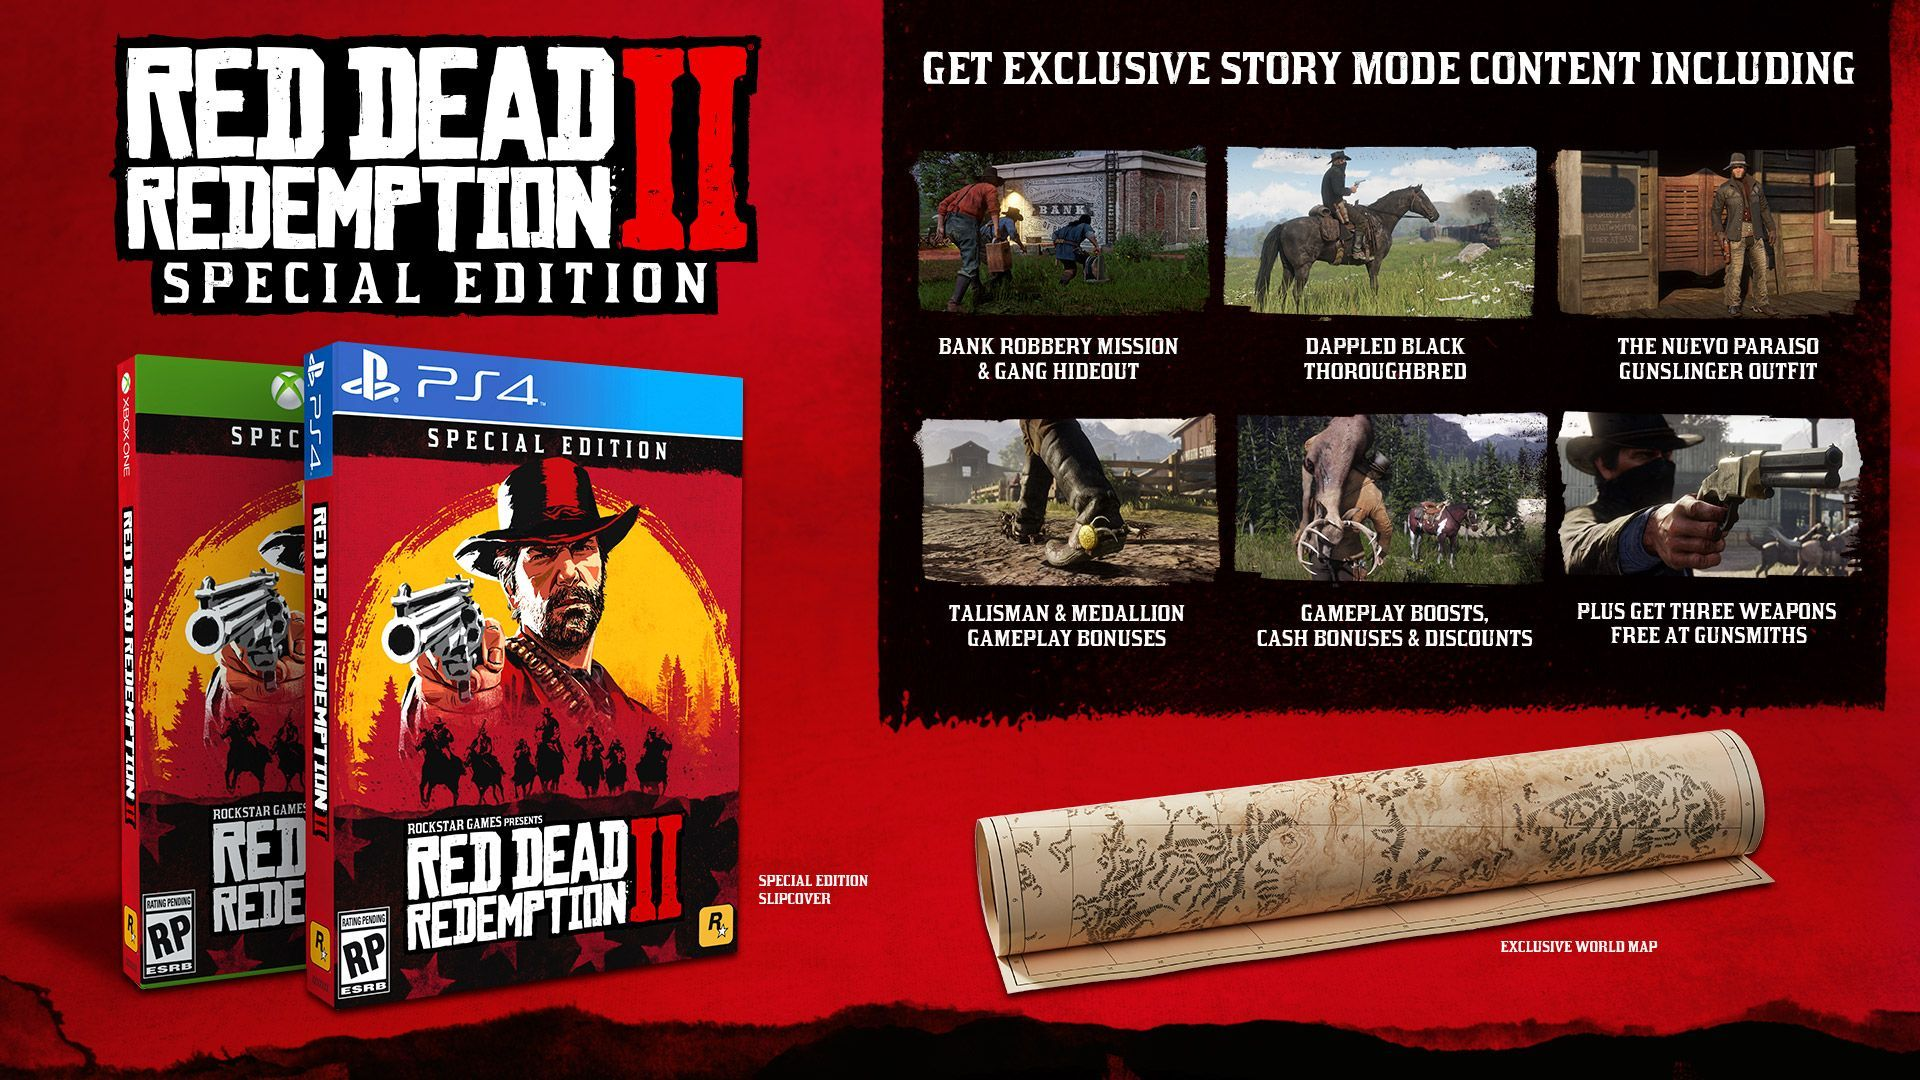 Red Dead Redemption 2 Special Edition (Xbox One) - 4